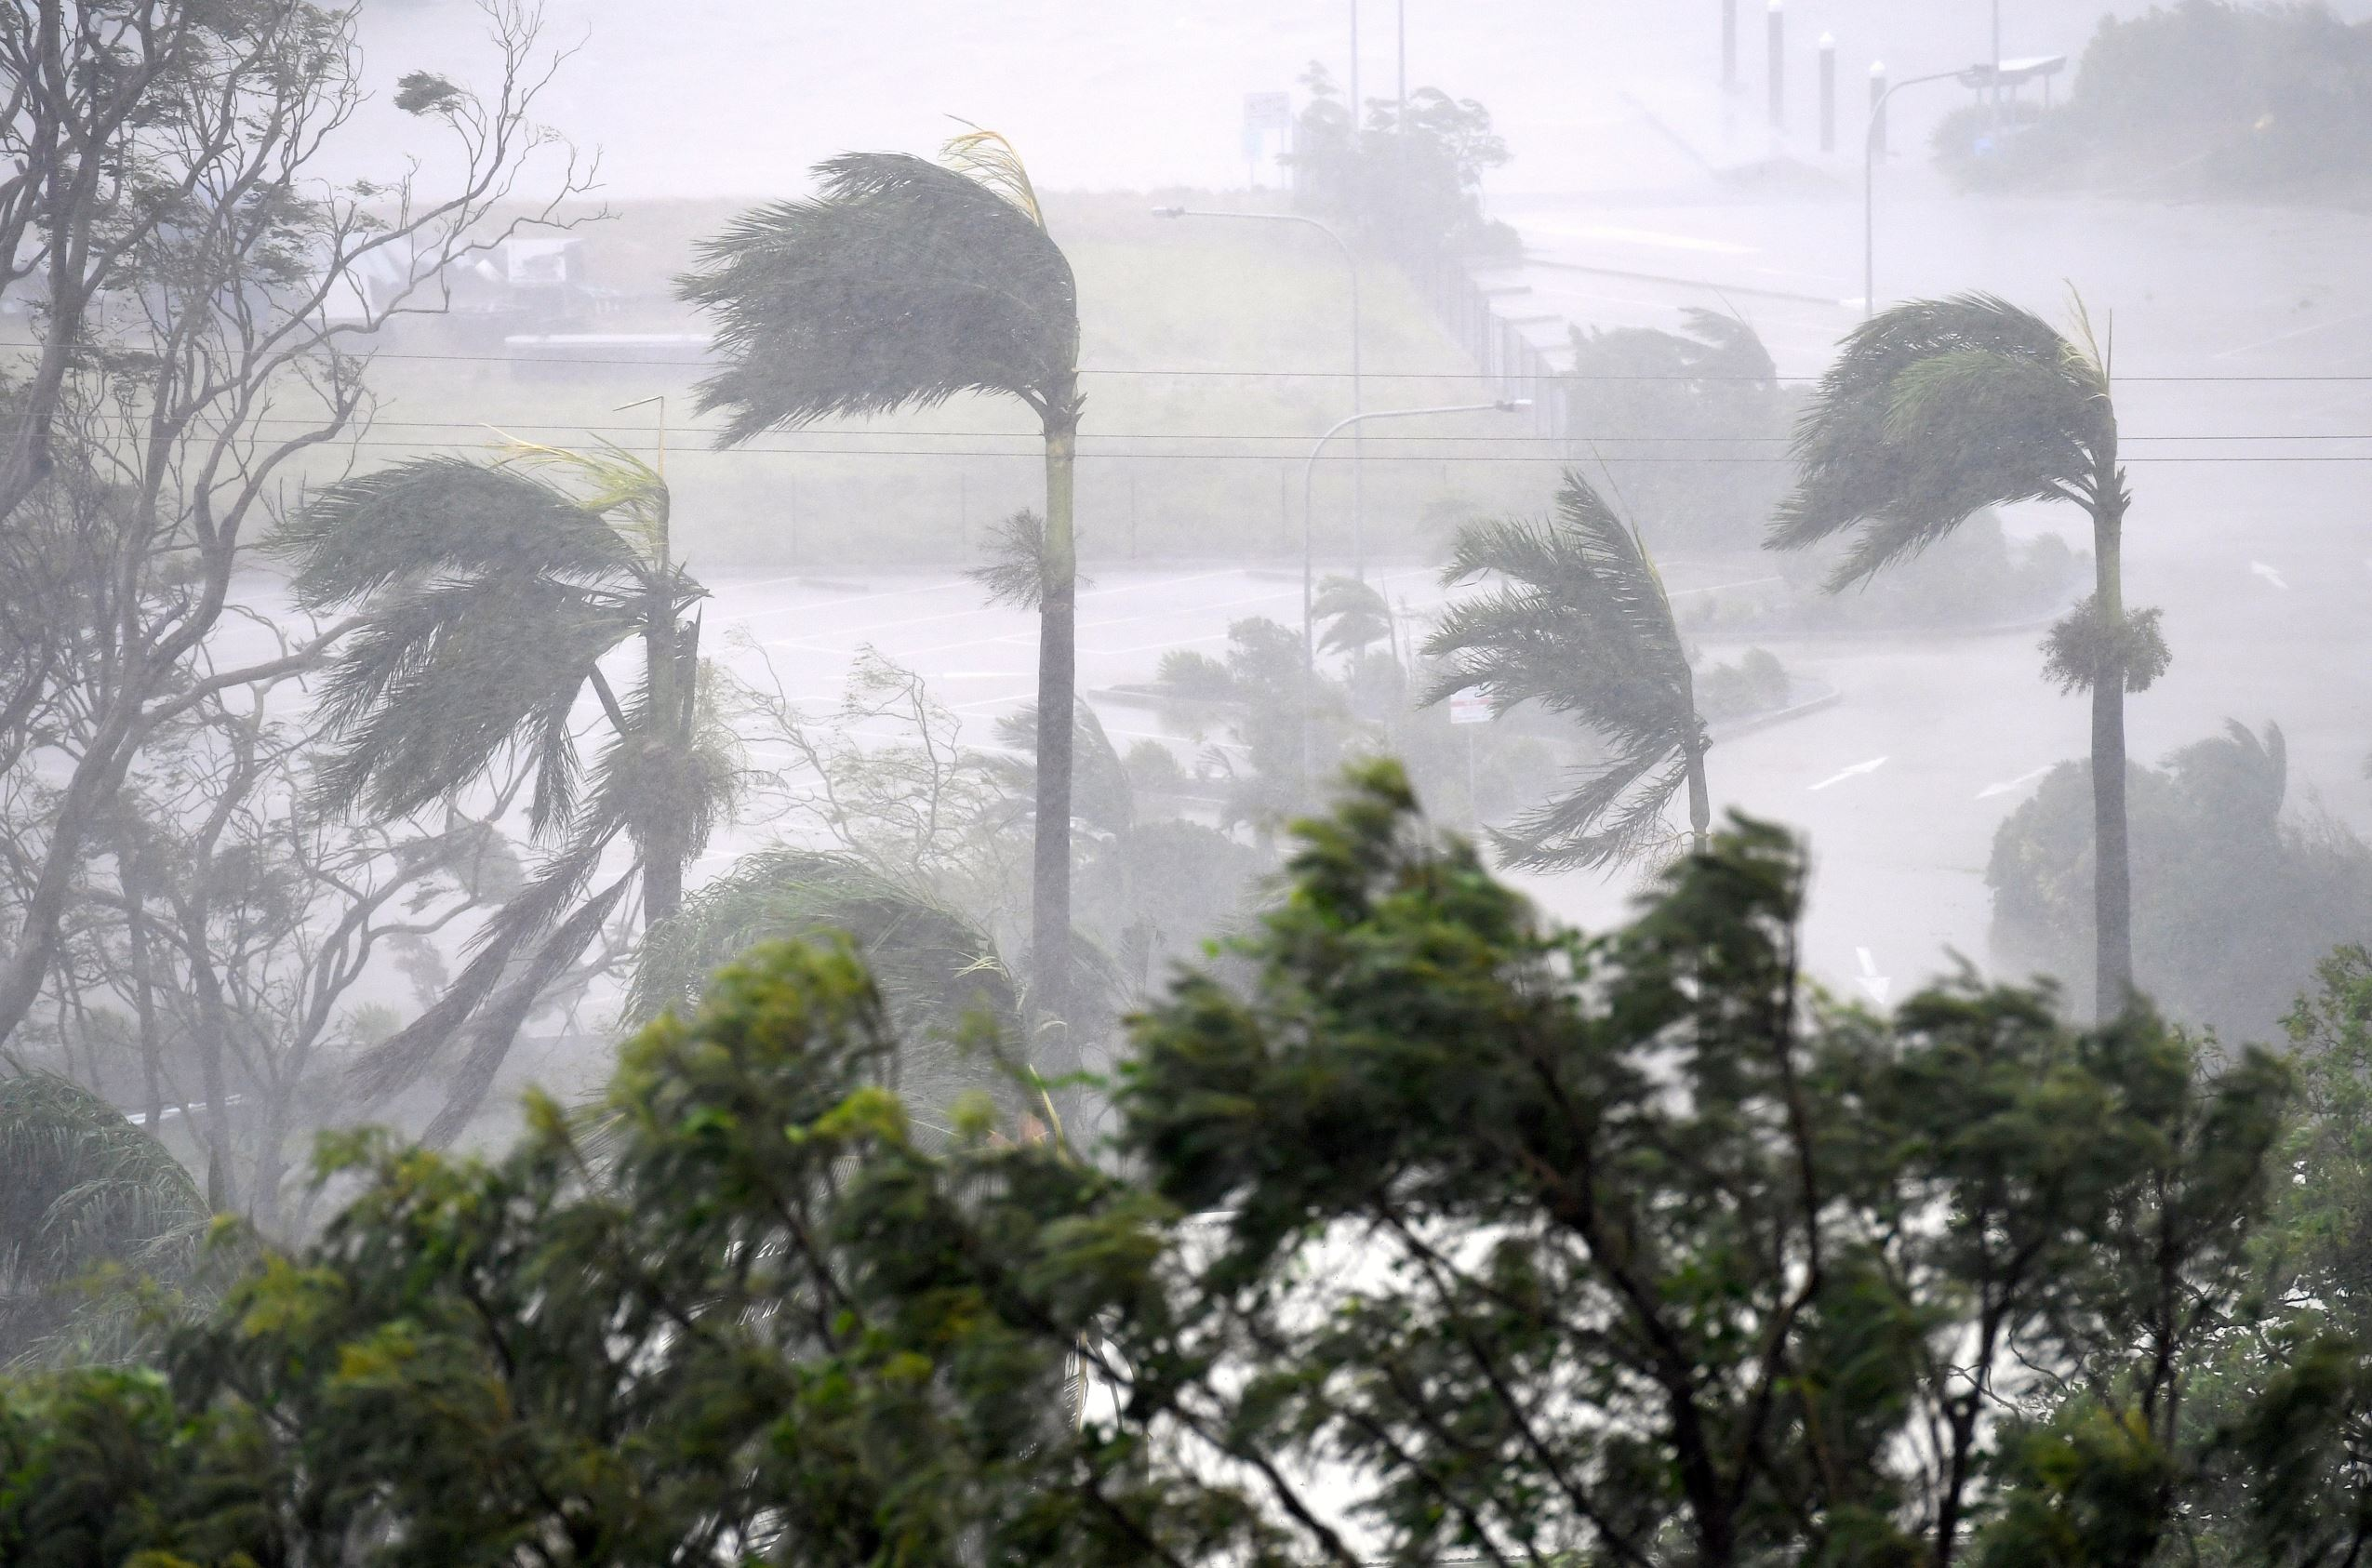 Strong wind and rain from Cyclone Debbie is seen effecting trees at Airlie Beach, located south of the northern Australian city of Townsville, March 28, 2017.